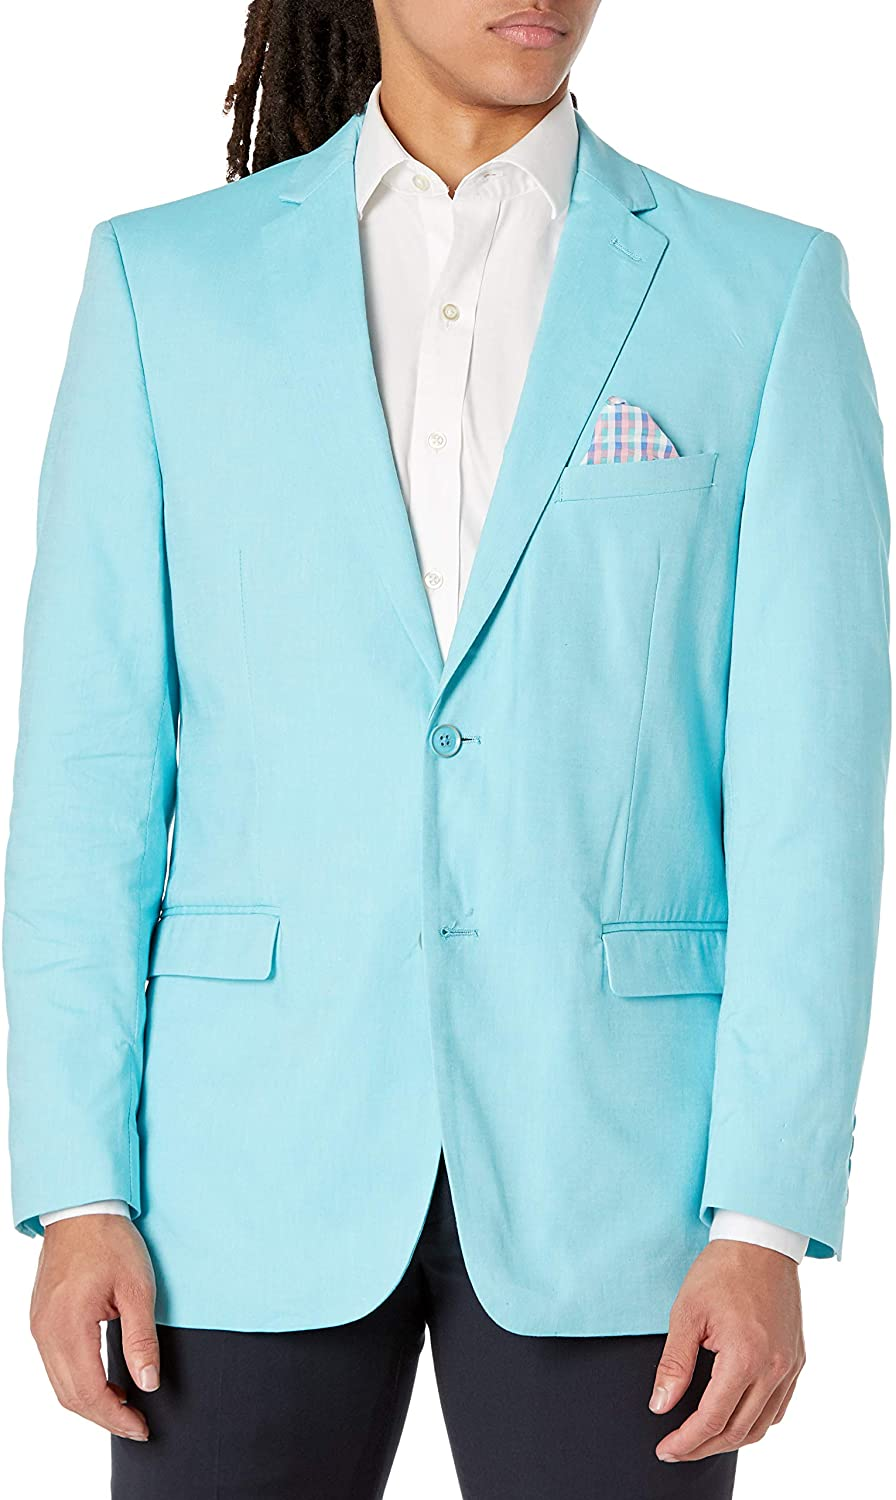 U.S. Max 64% OFF Polo Assn. Mens Men's Classic 2 Coat We OFFer at cheap prices Sport Button